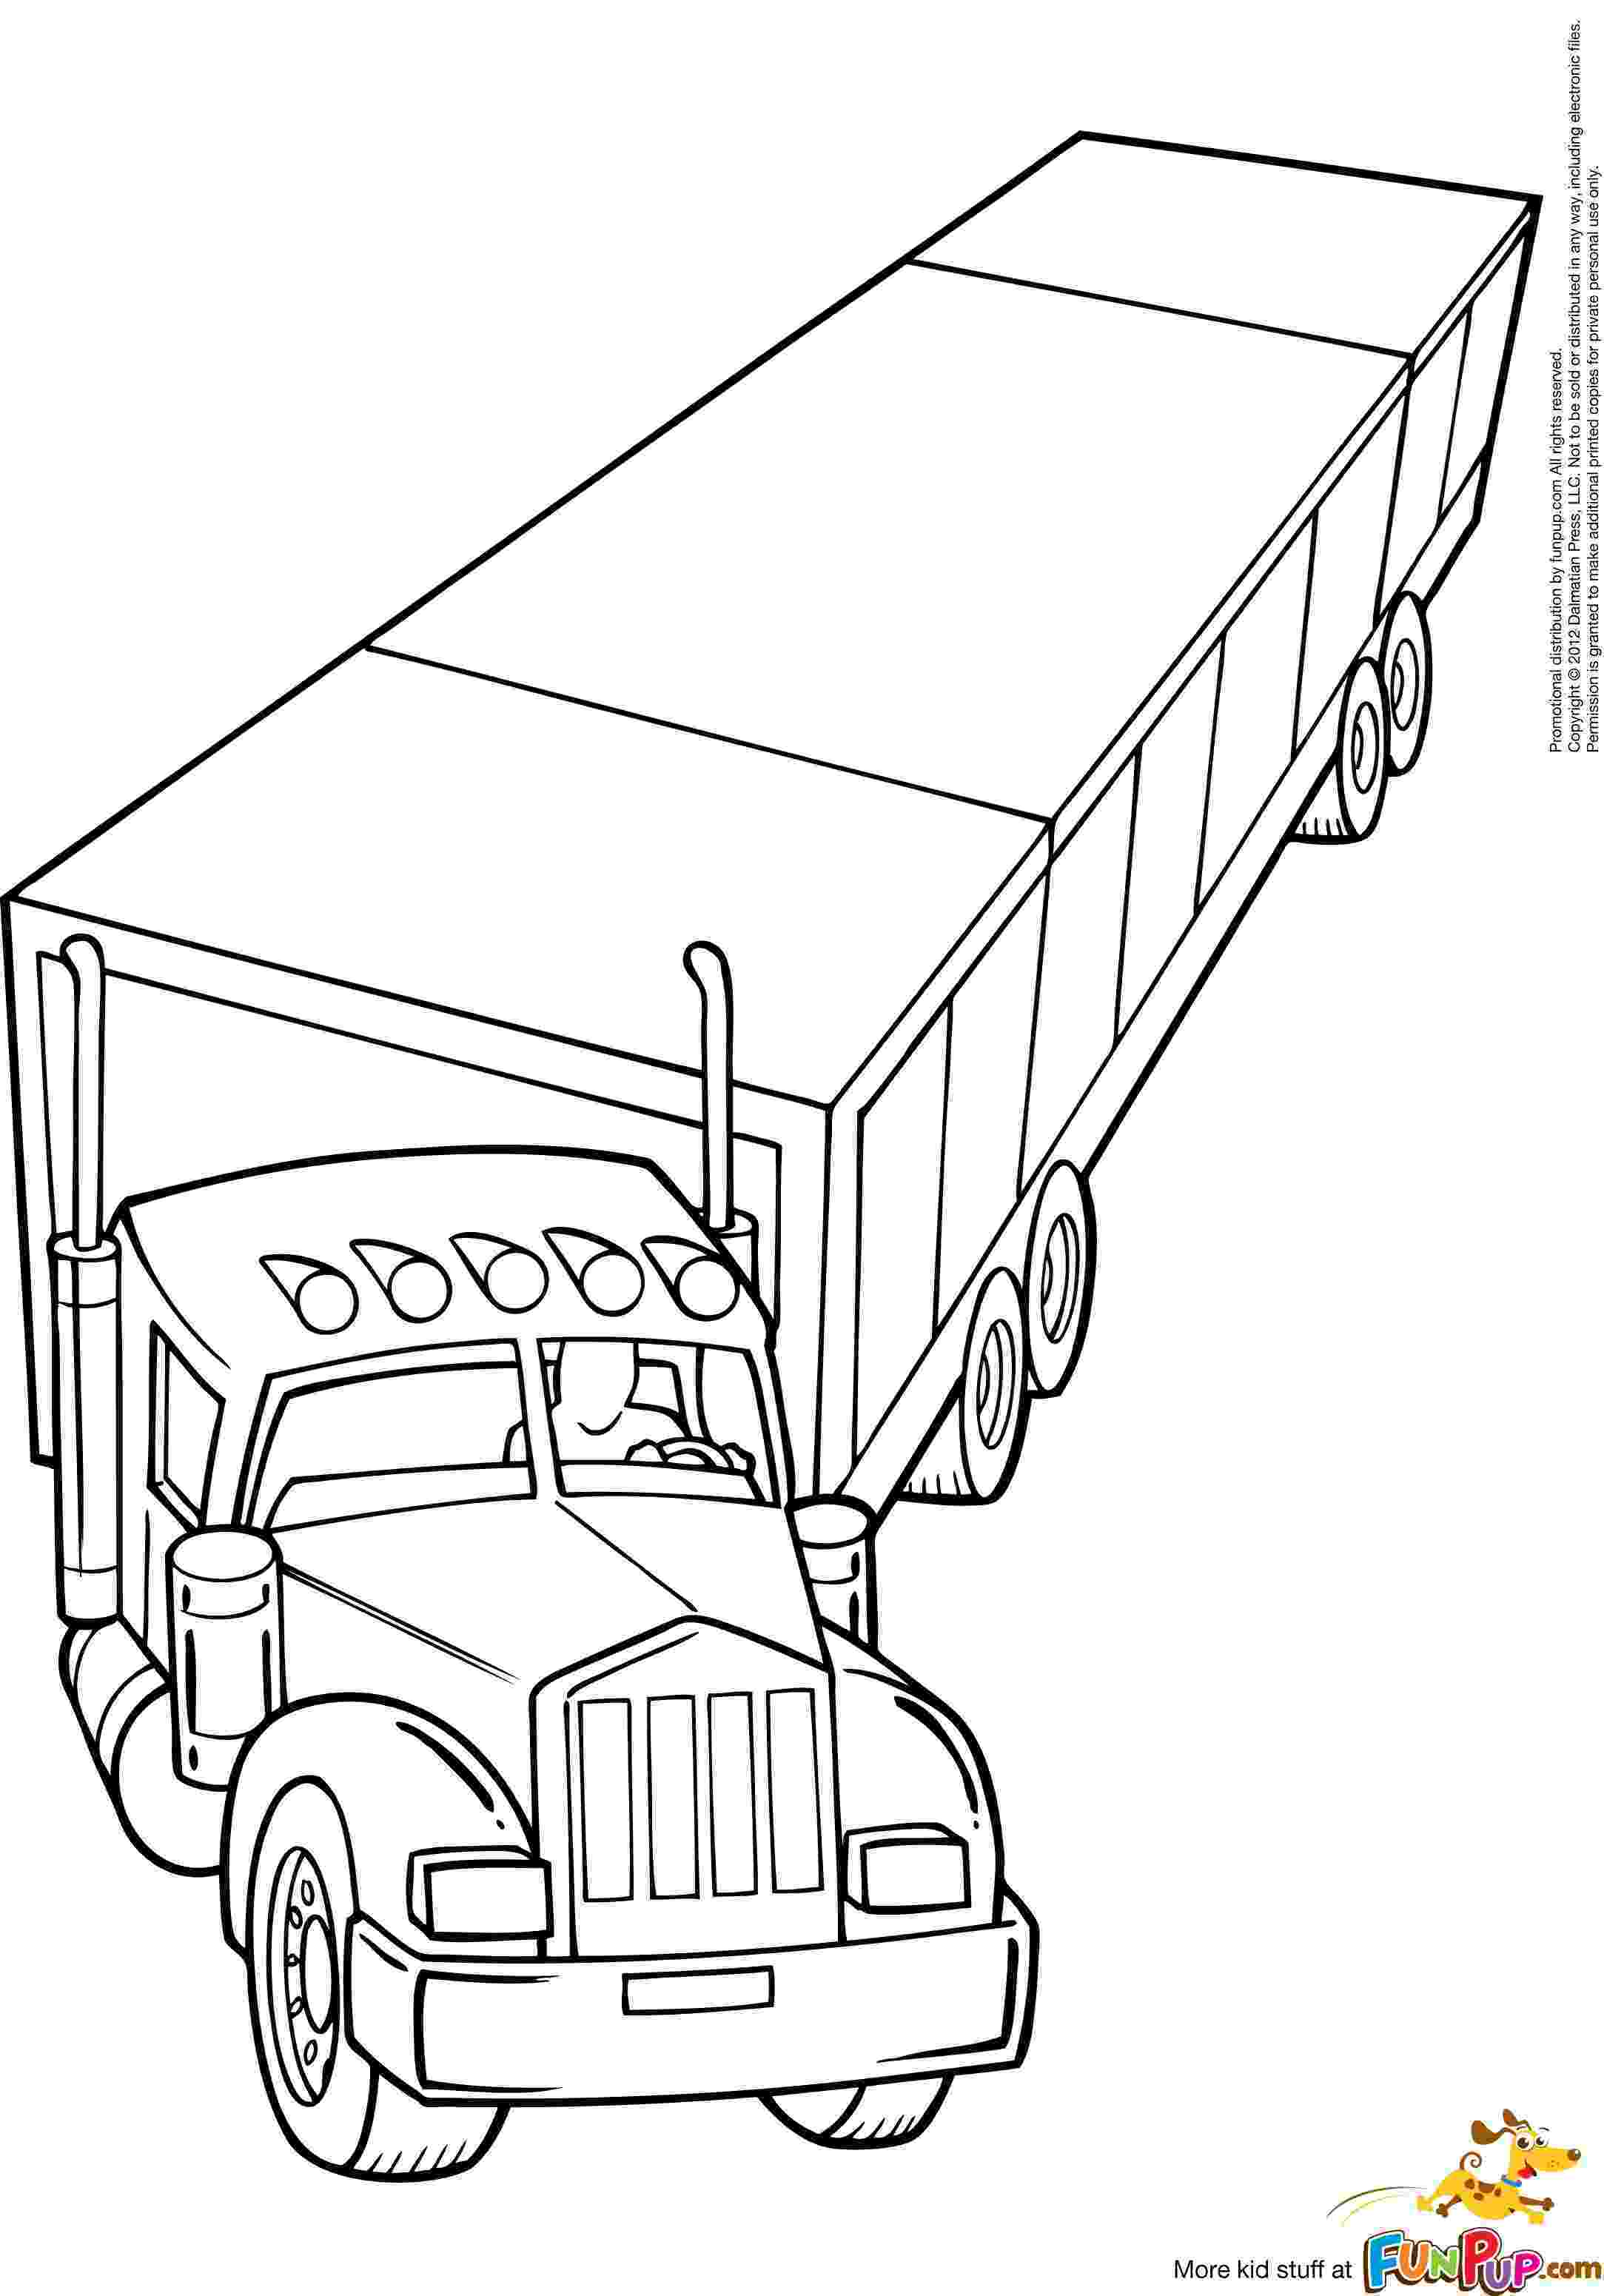 coloring pages of semi trucks semi truck coloring pages to download and print for free coloring trucks pages semi of